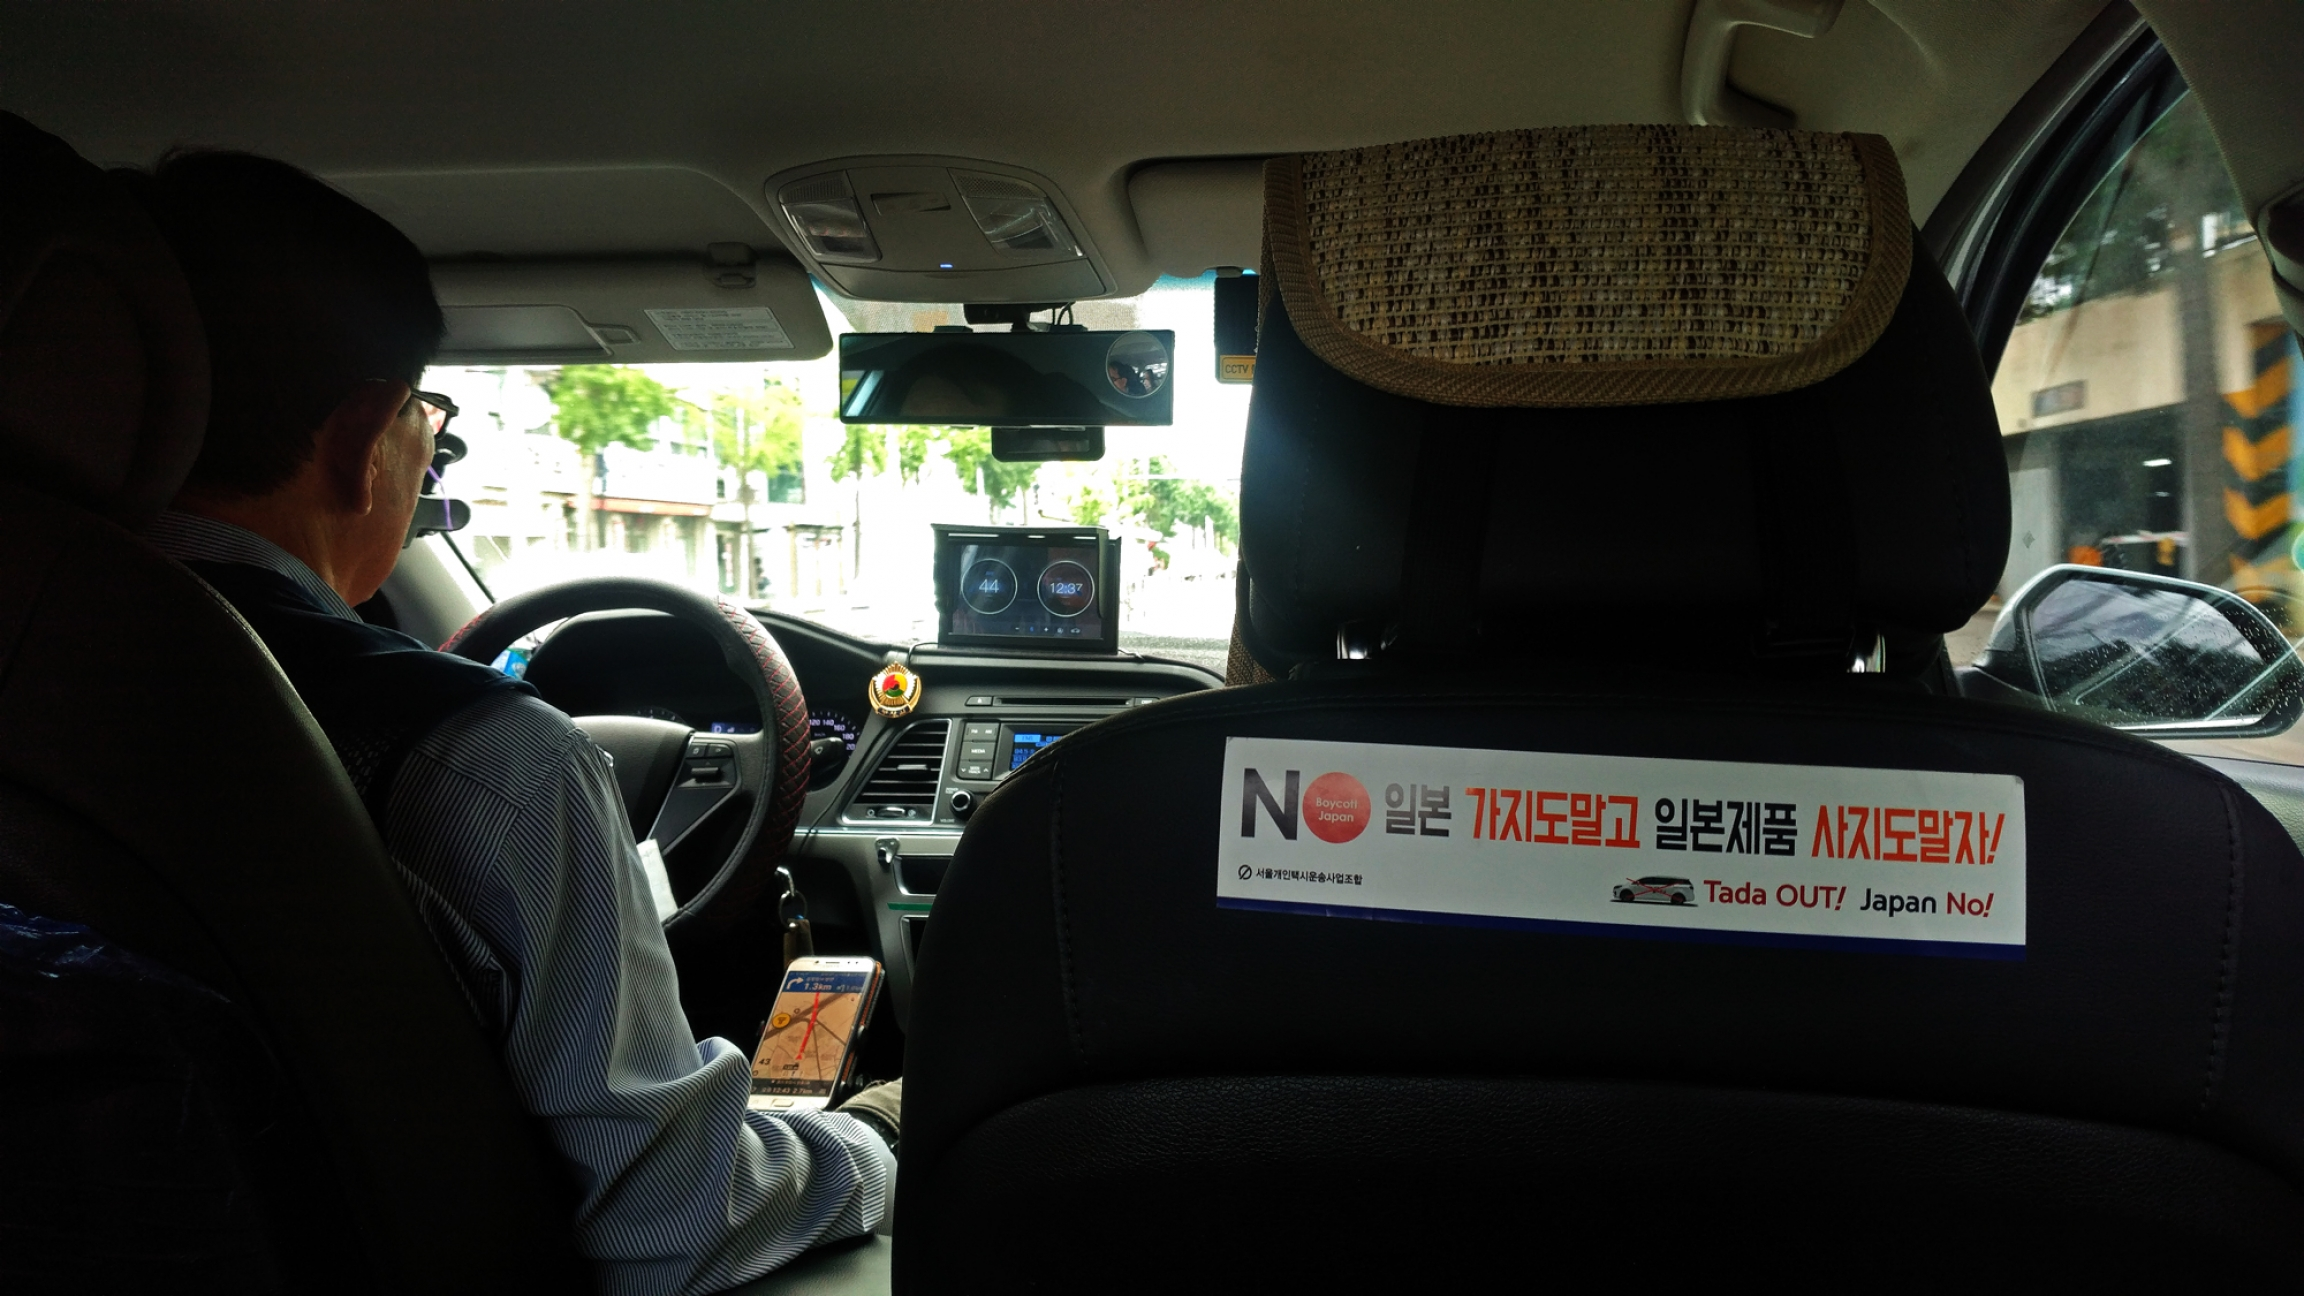 A taxi interior features an anti-Japan sticker